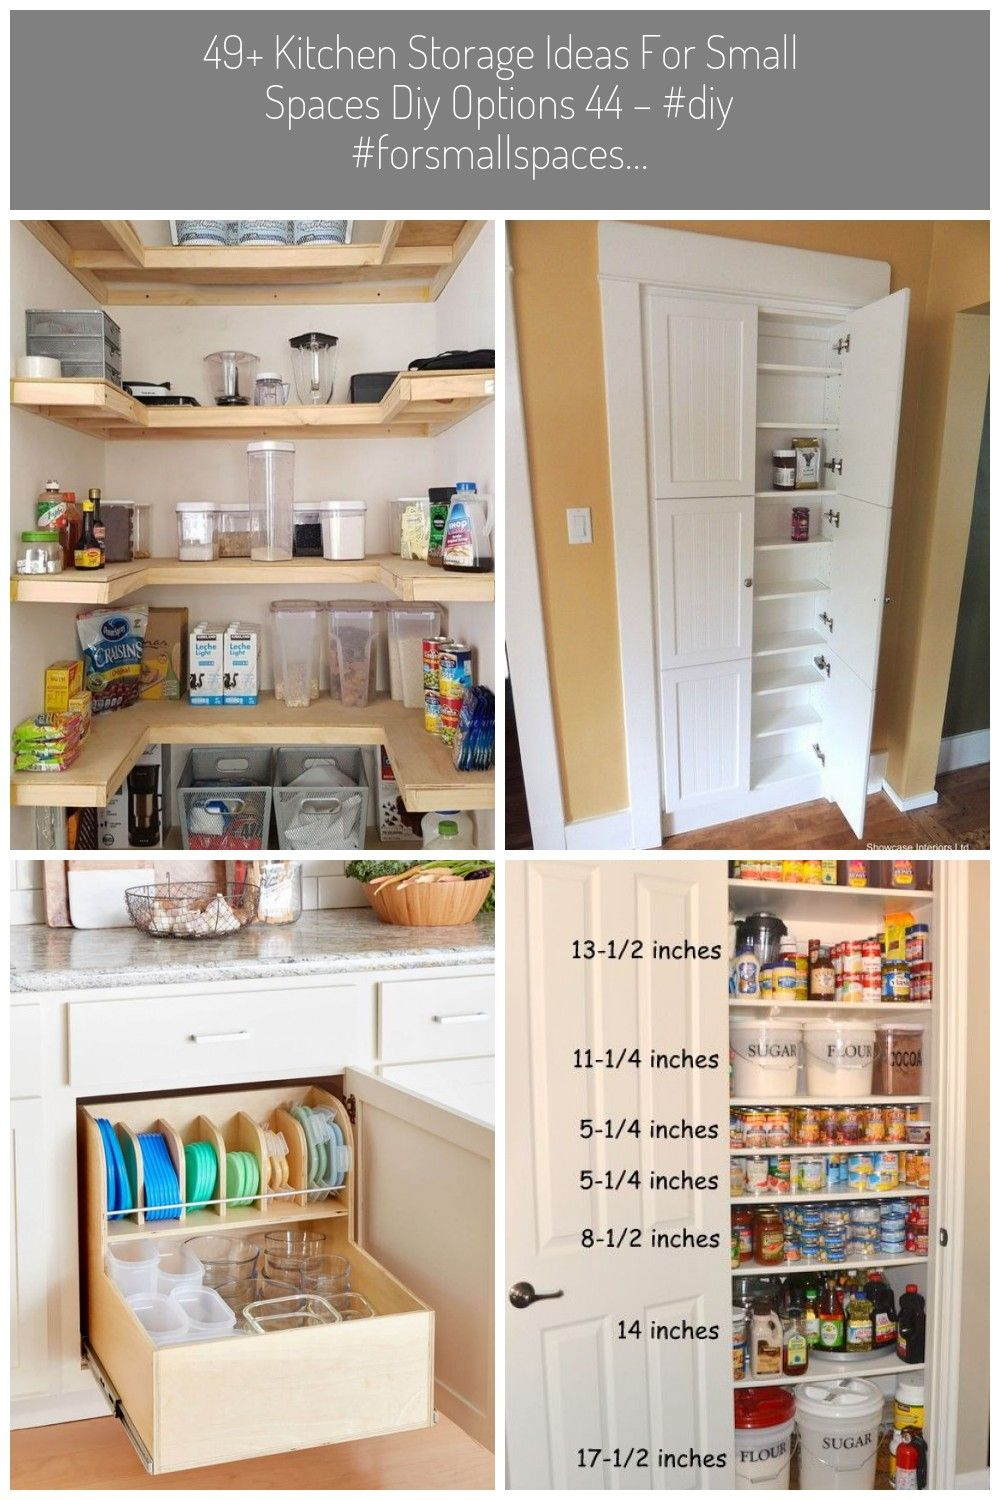 49 Kitchen Storage Ideas For Small Spaces Diy Options 44 Diy Forsmallspaces Ideas Kitchen Op26 Facts Fiction And In 2020 Small Space Diy Kitchen Storage Small Spaces